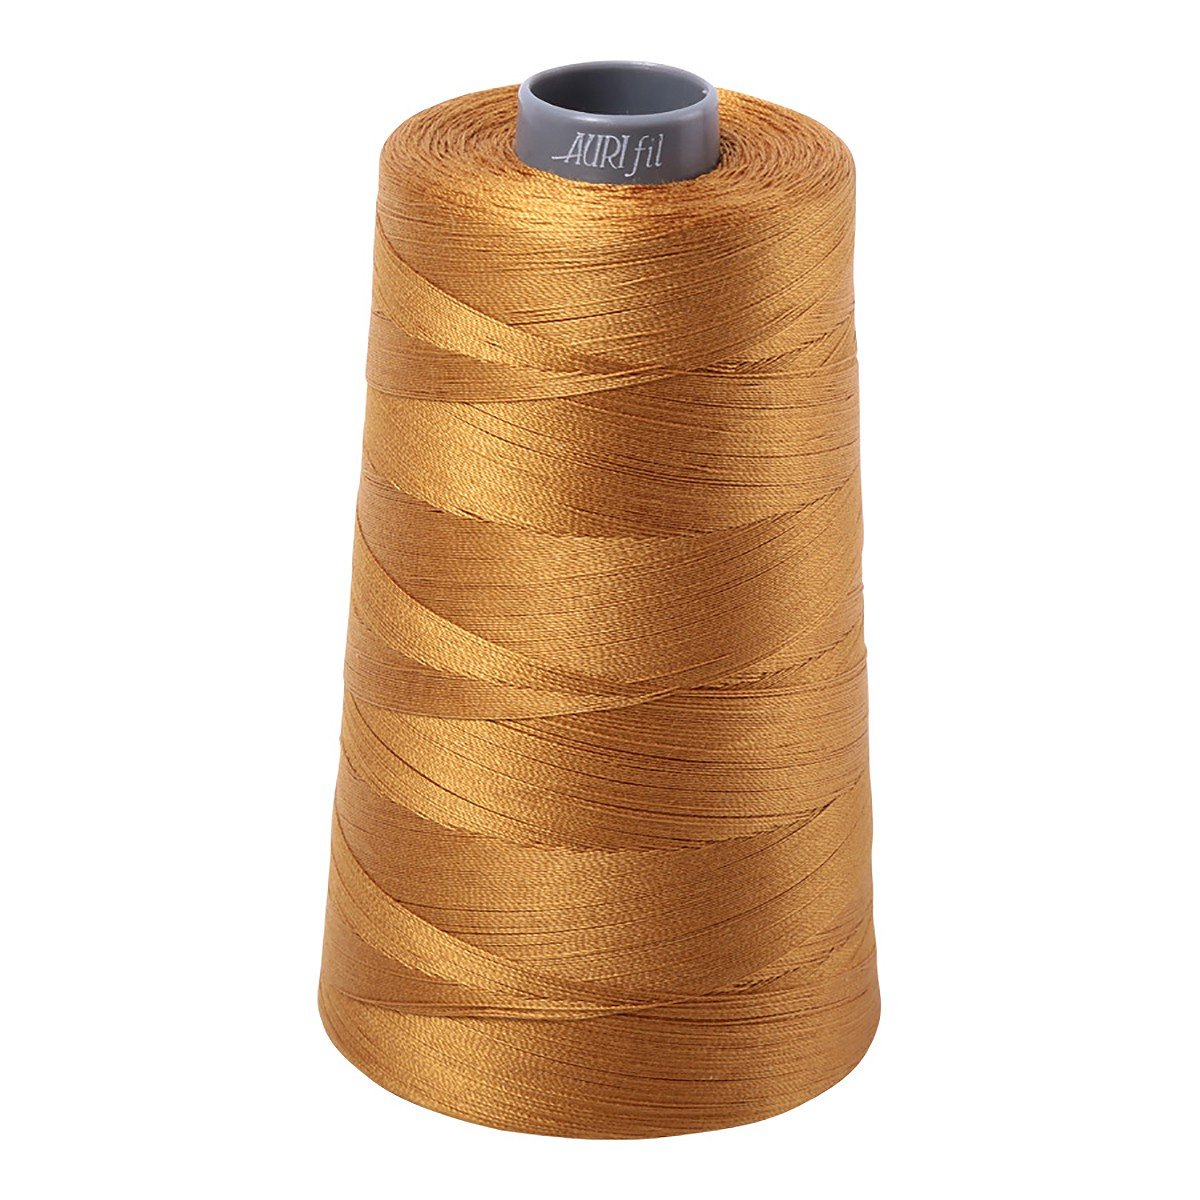 Mako (Cotton) Embroidery Thread 28wt 3609yds Brass